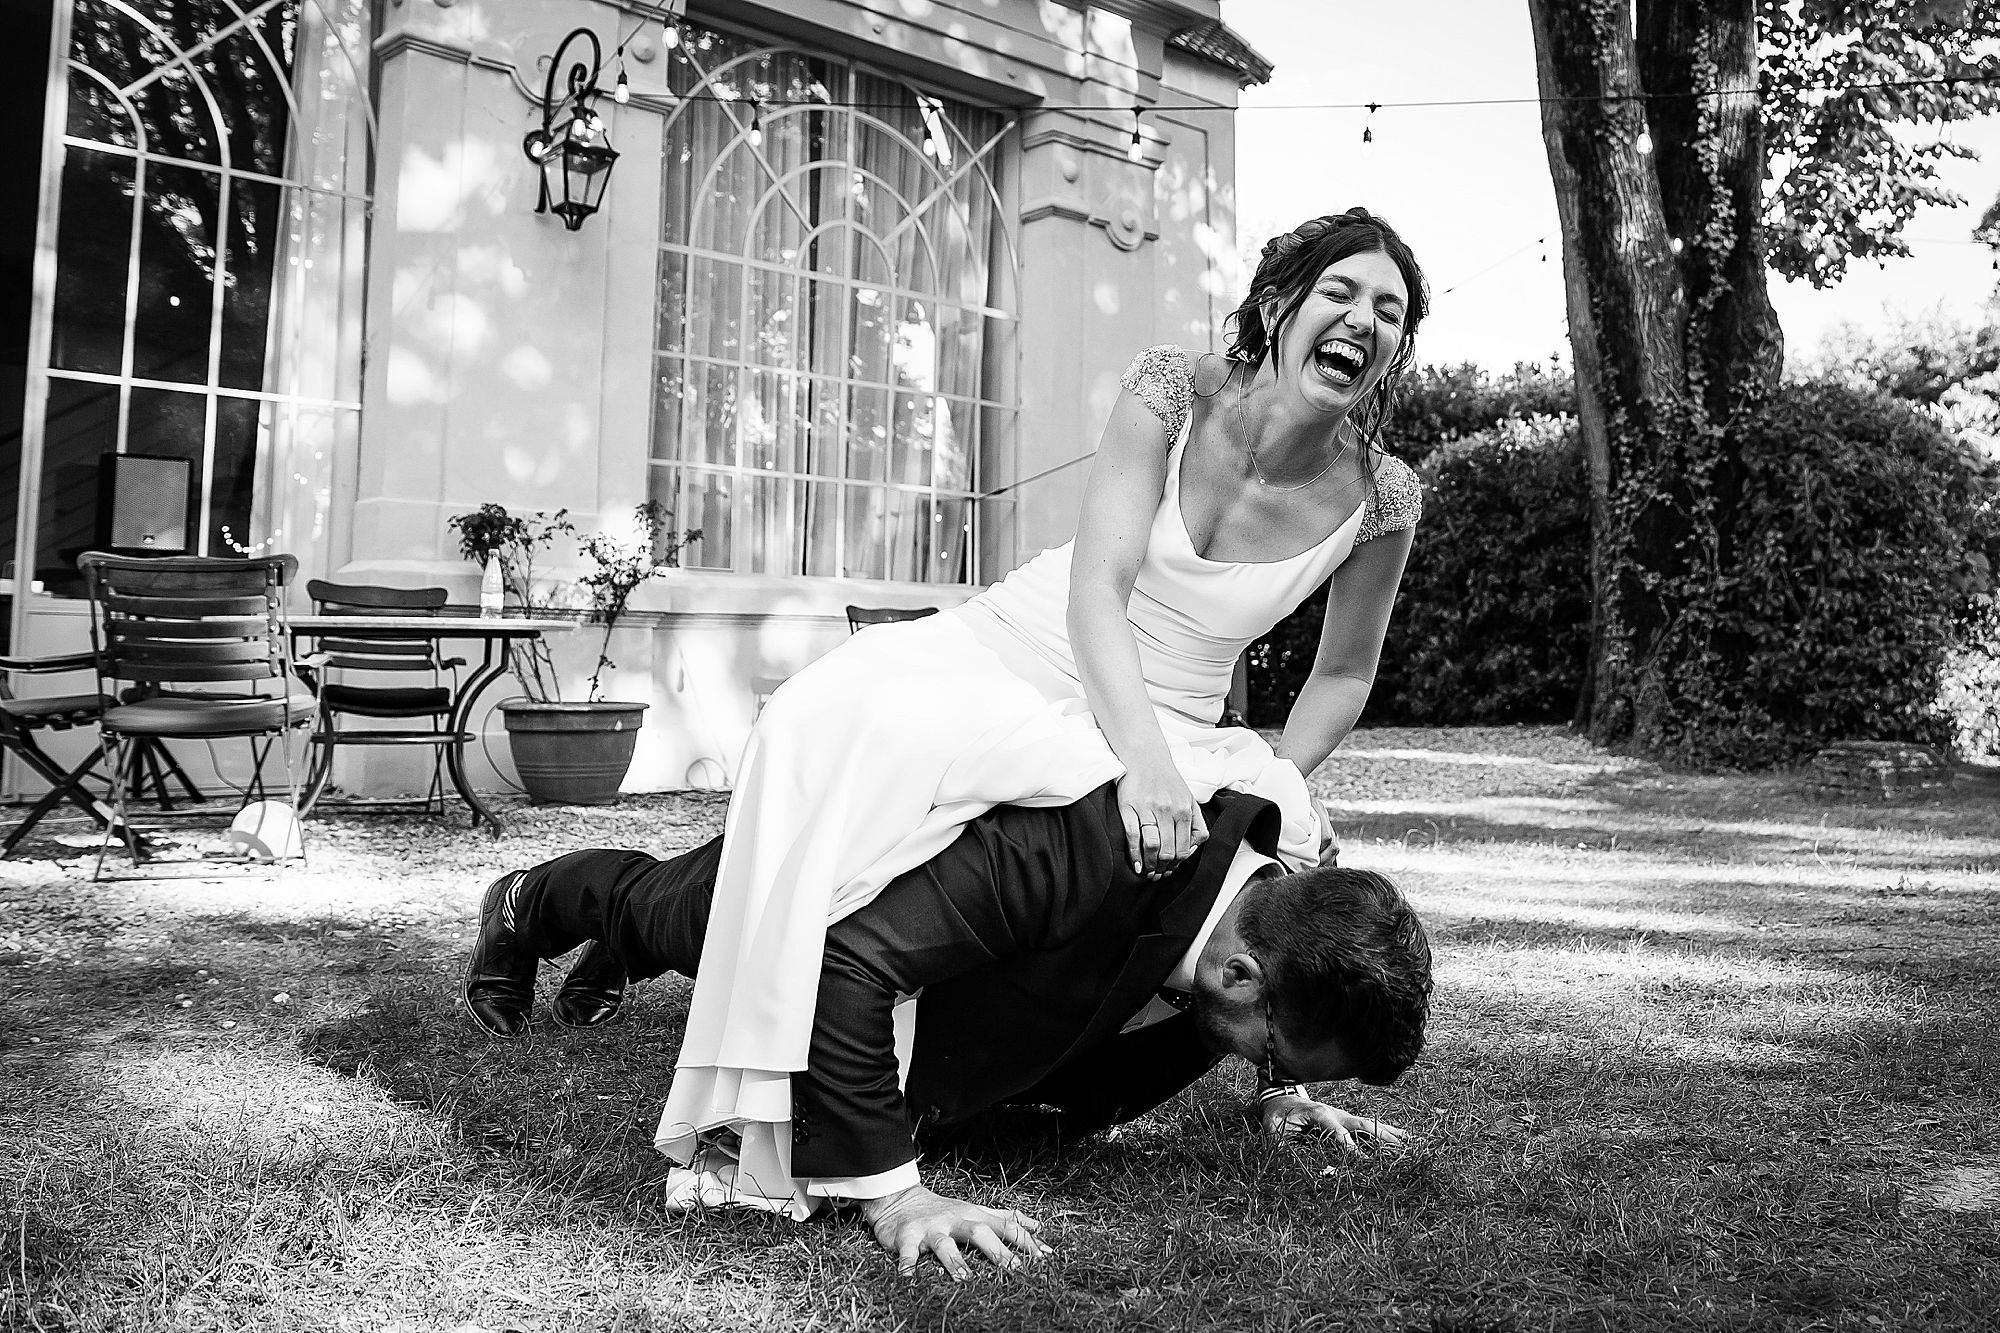 groom does press ups with the bride on his back.